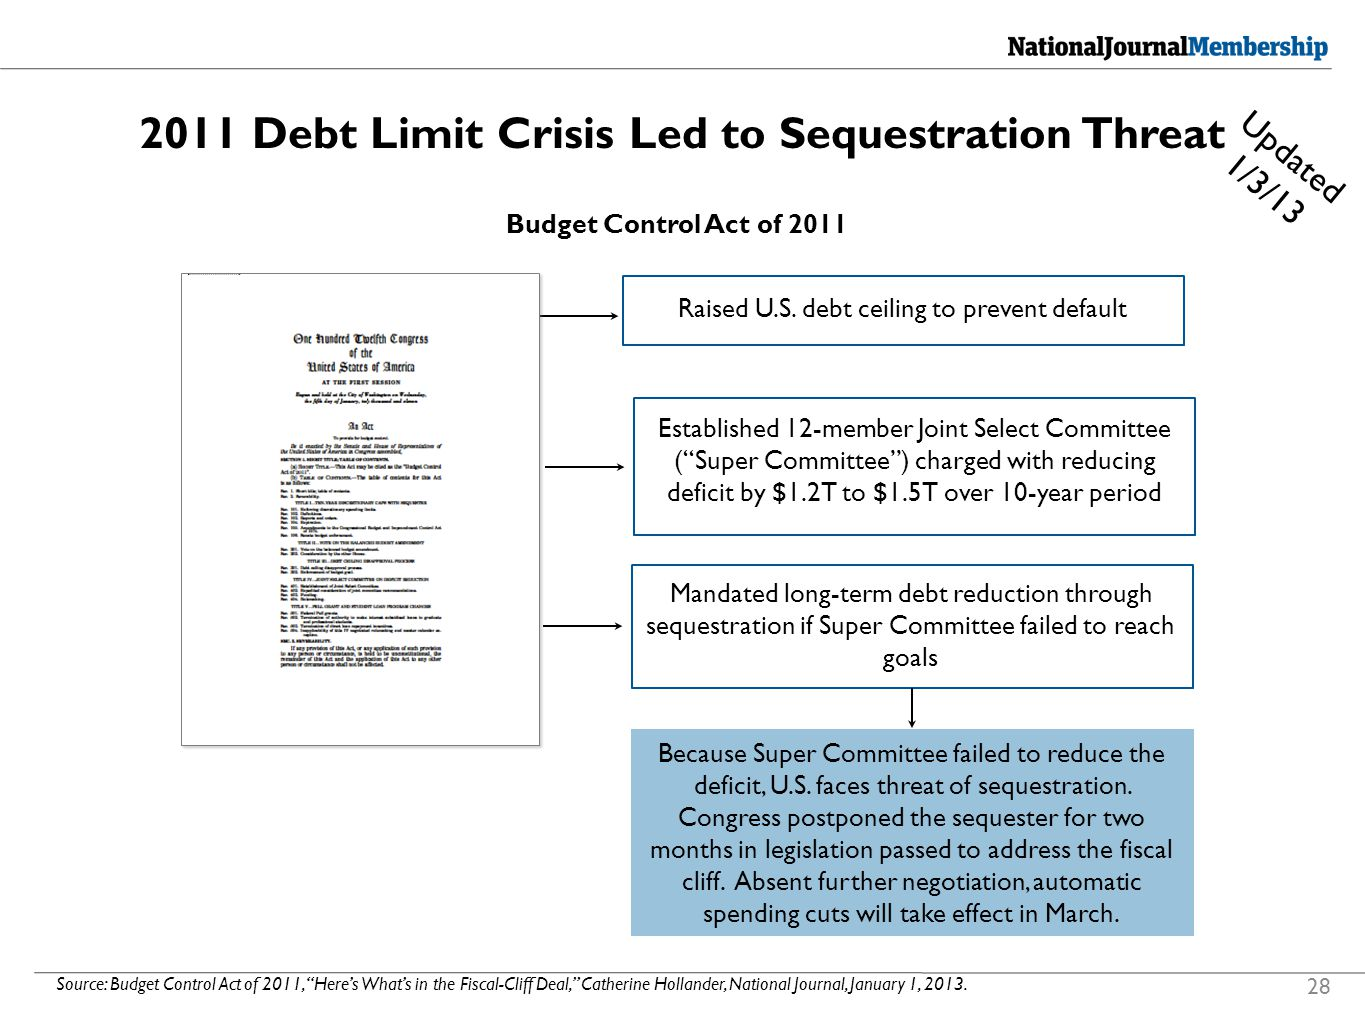 2011 Debt Limit Crisis Led to Sequestration Threat Source: Budget Control Act of 2011, Here's What's in the Fiscal-Cliff Deal, Catherine Hollander, National Journal, January 1, 2013.